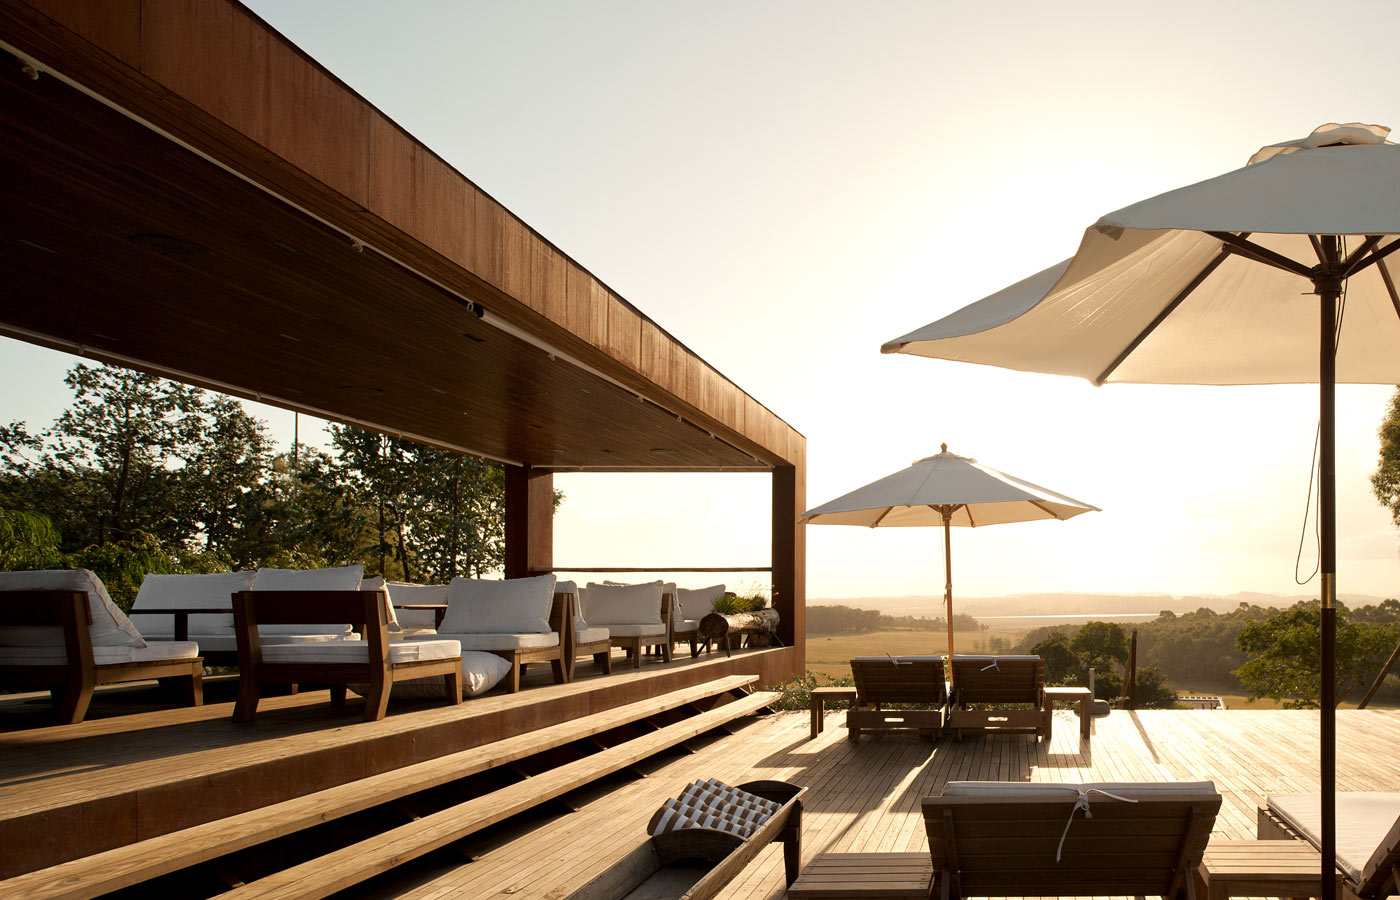 Exterior lounge of the Fasano Las Piedras, Uruguay